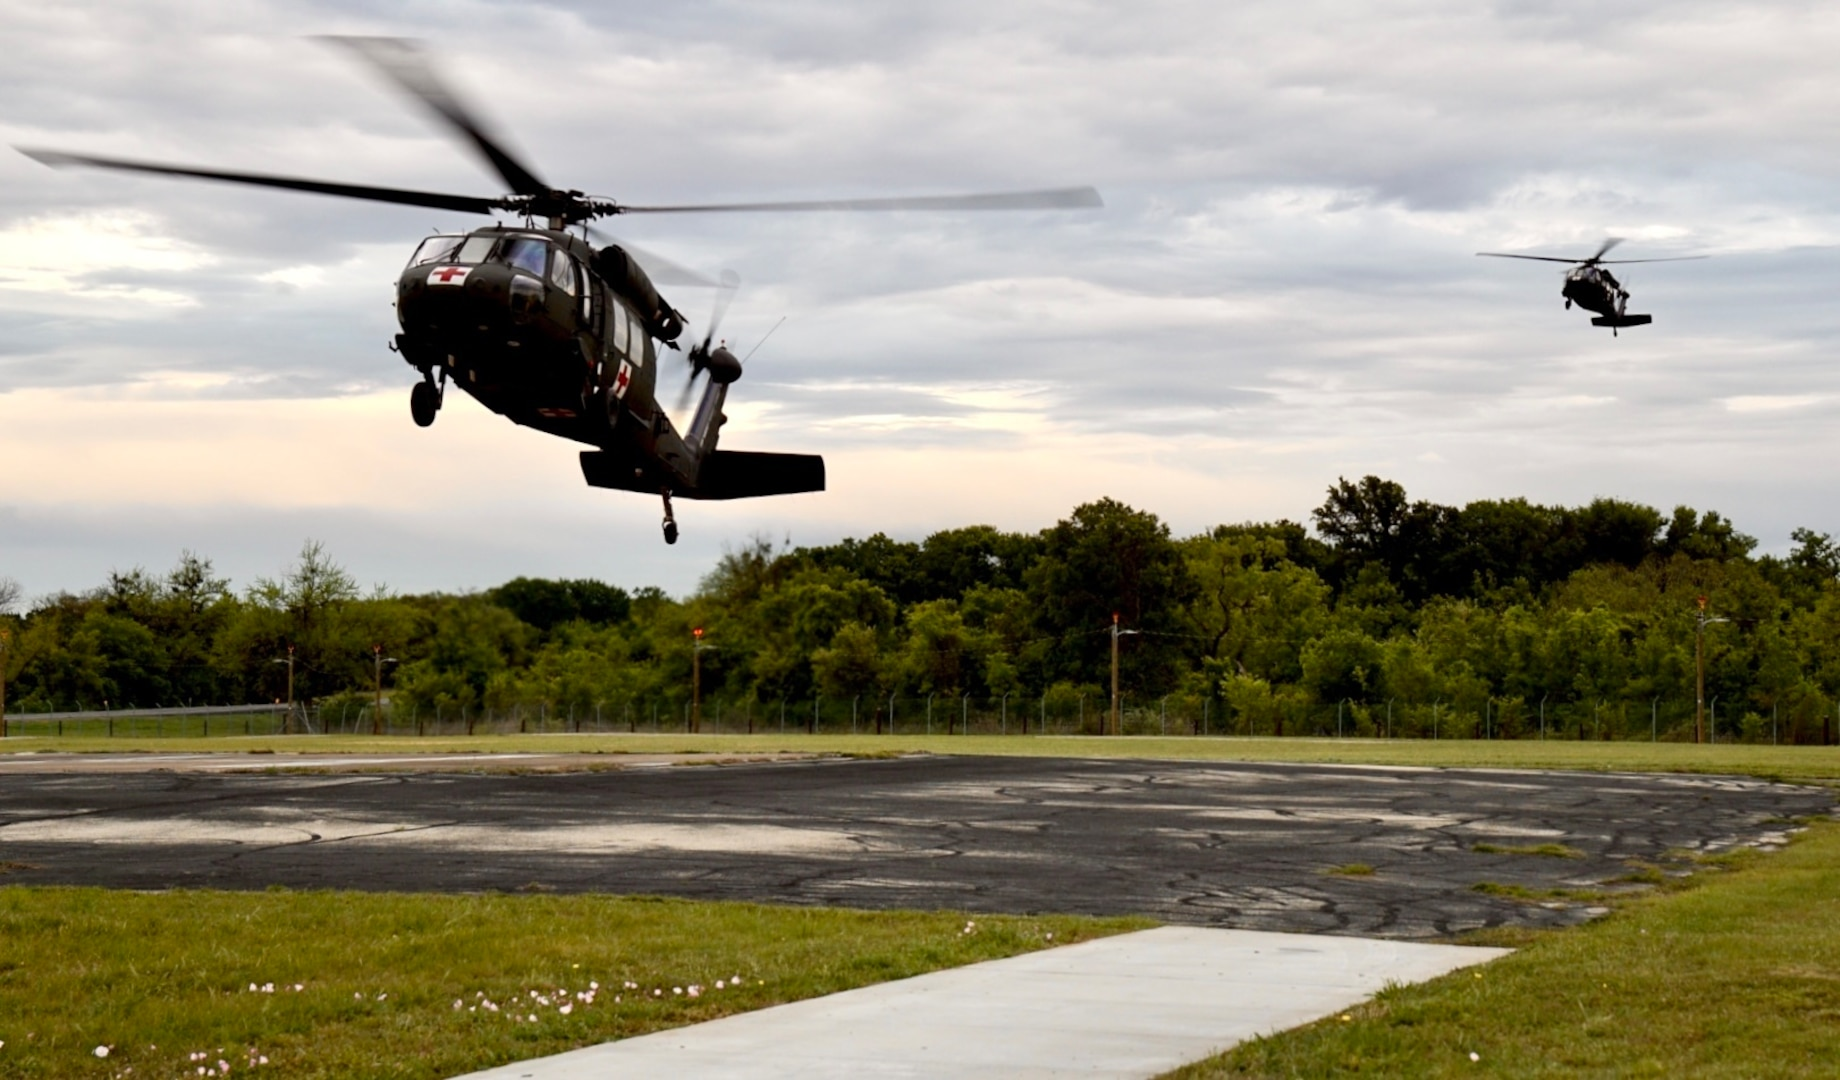 Task Force Phoenix UH-60 Black Hawk helicopters from G Company, 1st Battalion, 168th Aviation Regiment (General Support Aviation Battalion), land at North Fort Hood, Texas, April 17, 2021, during a medevac training mission that was part of a culminating training exercise.